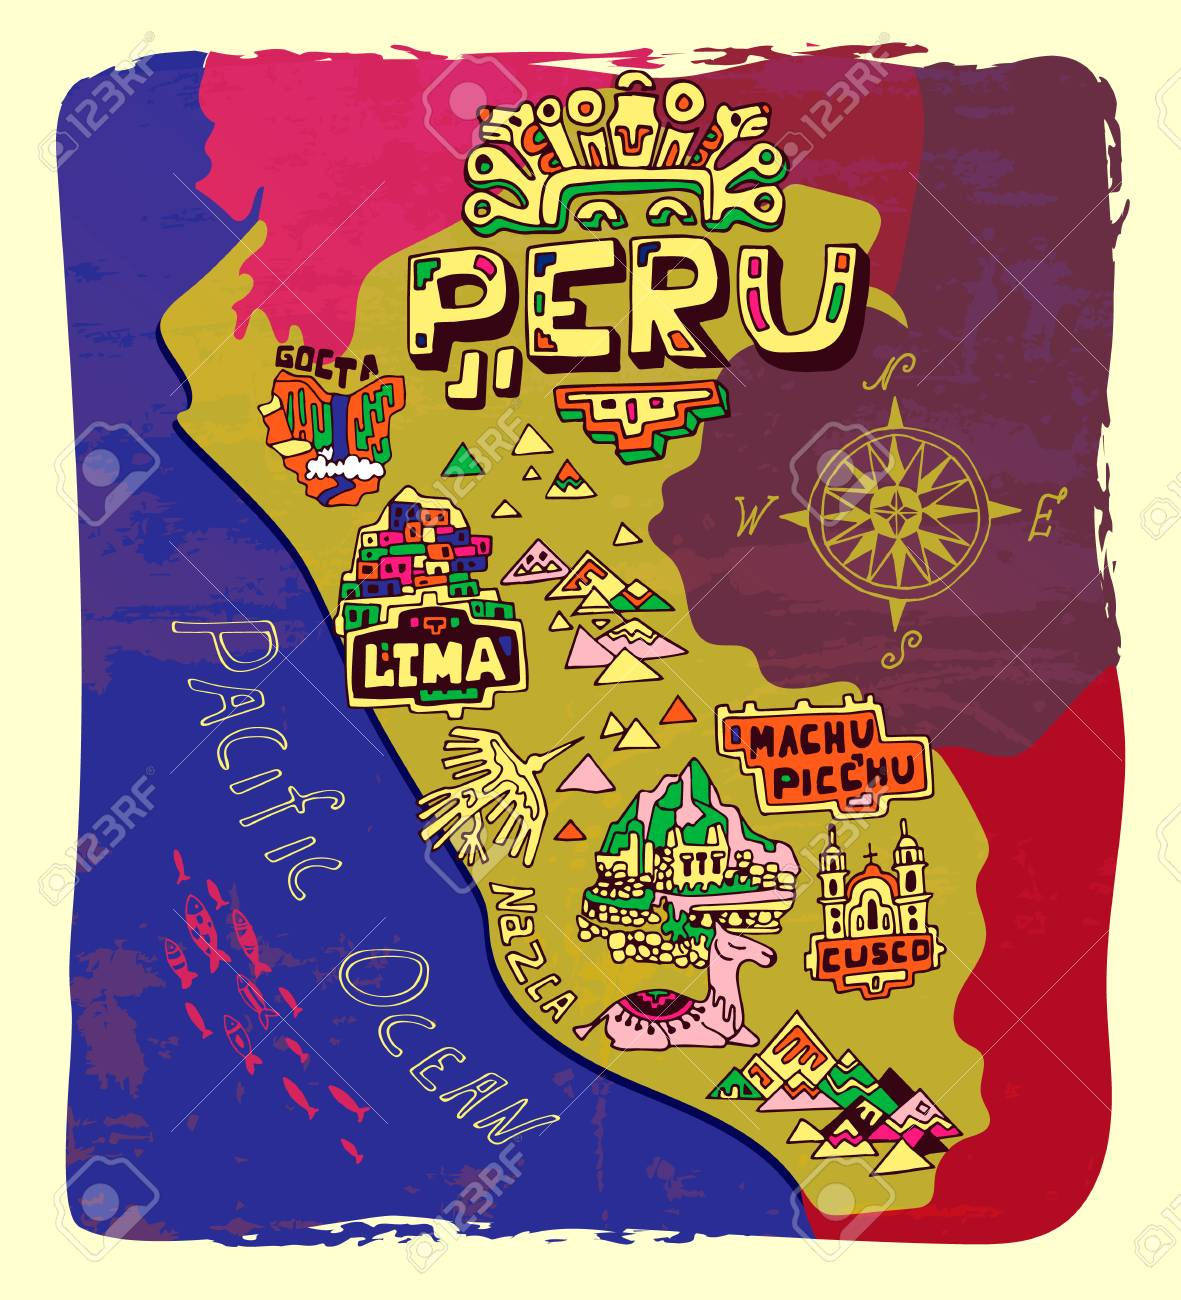 Illustrated map of Peru. Travel and attractions